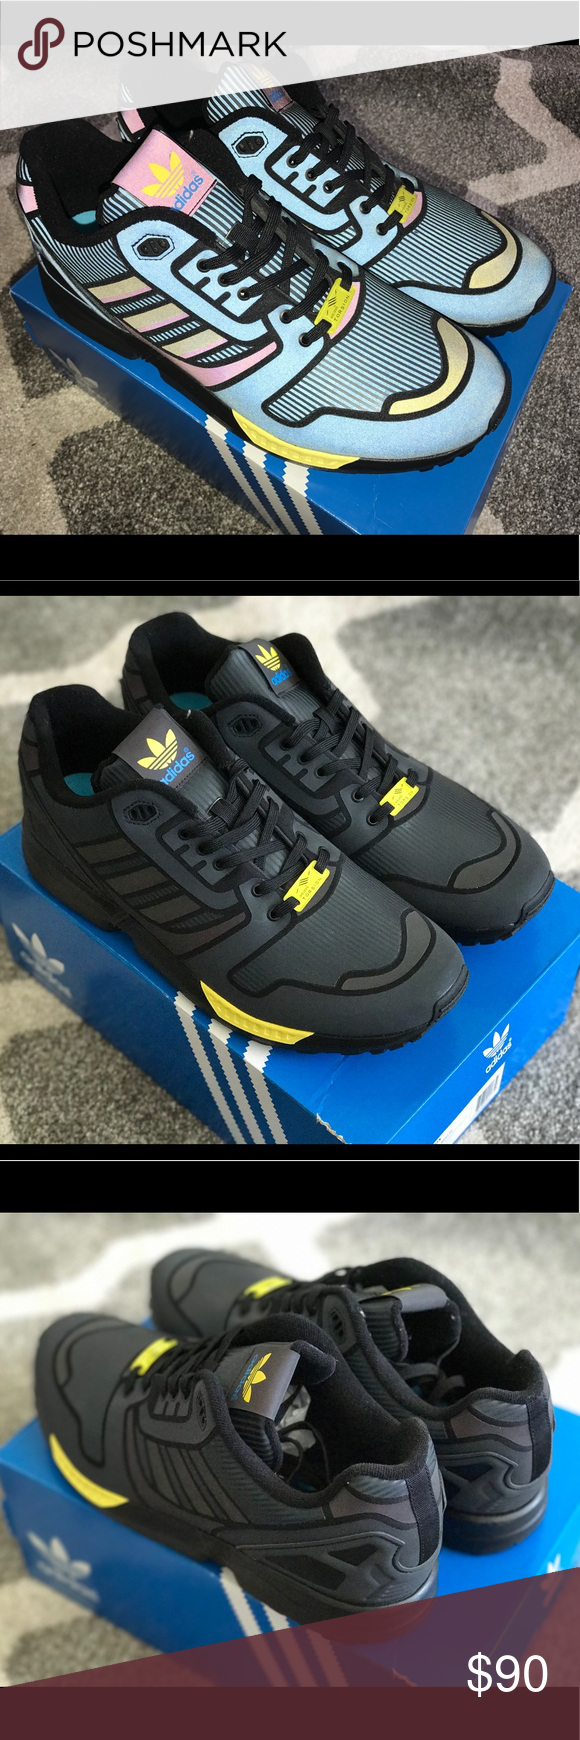 online store 128d8 5388b Adidas ZX Flux b54176 Sz 11 Brand new! These have never been ...